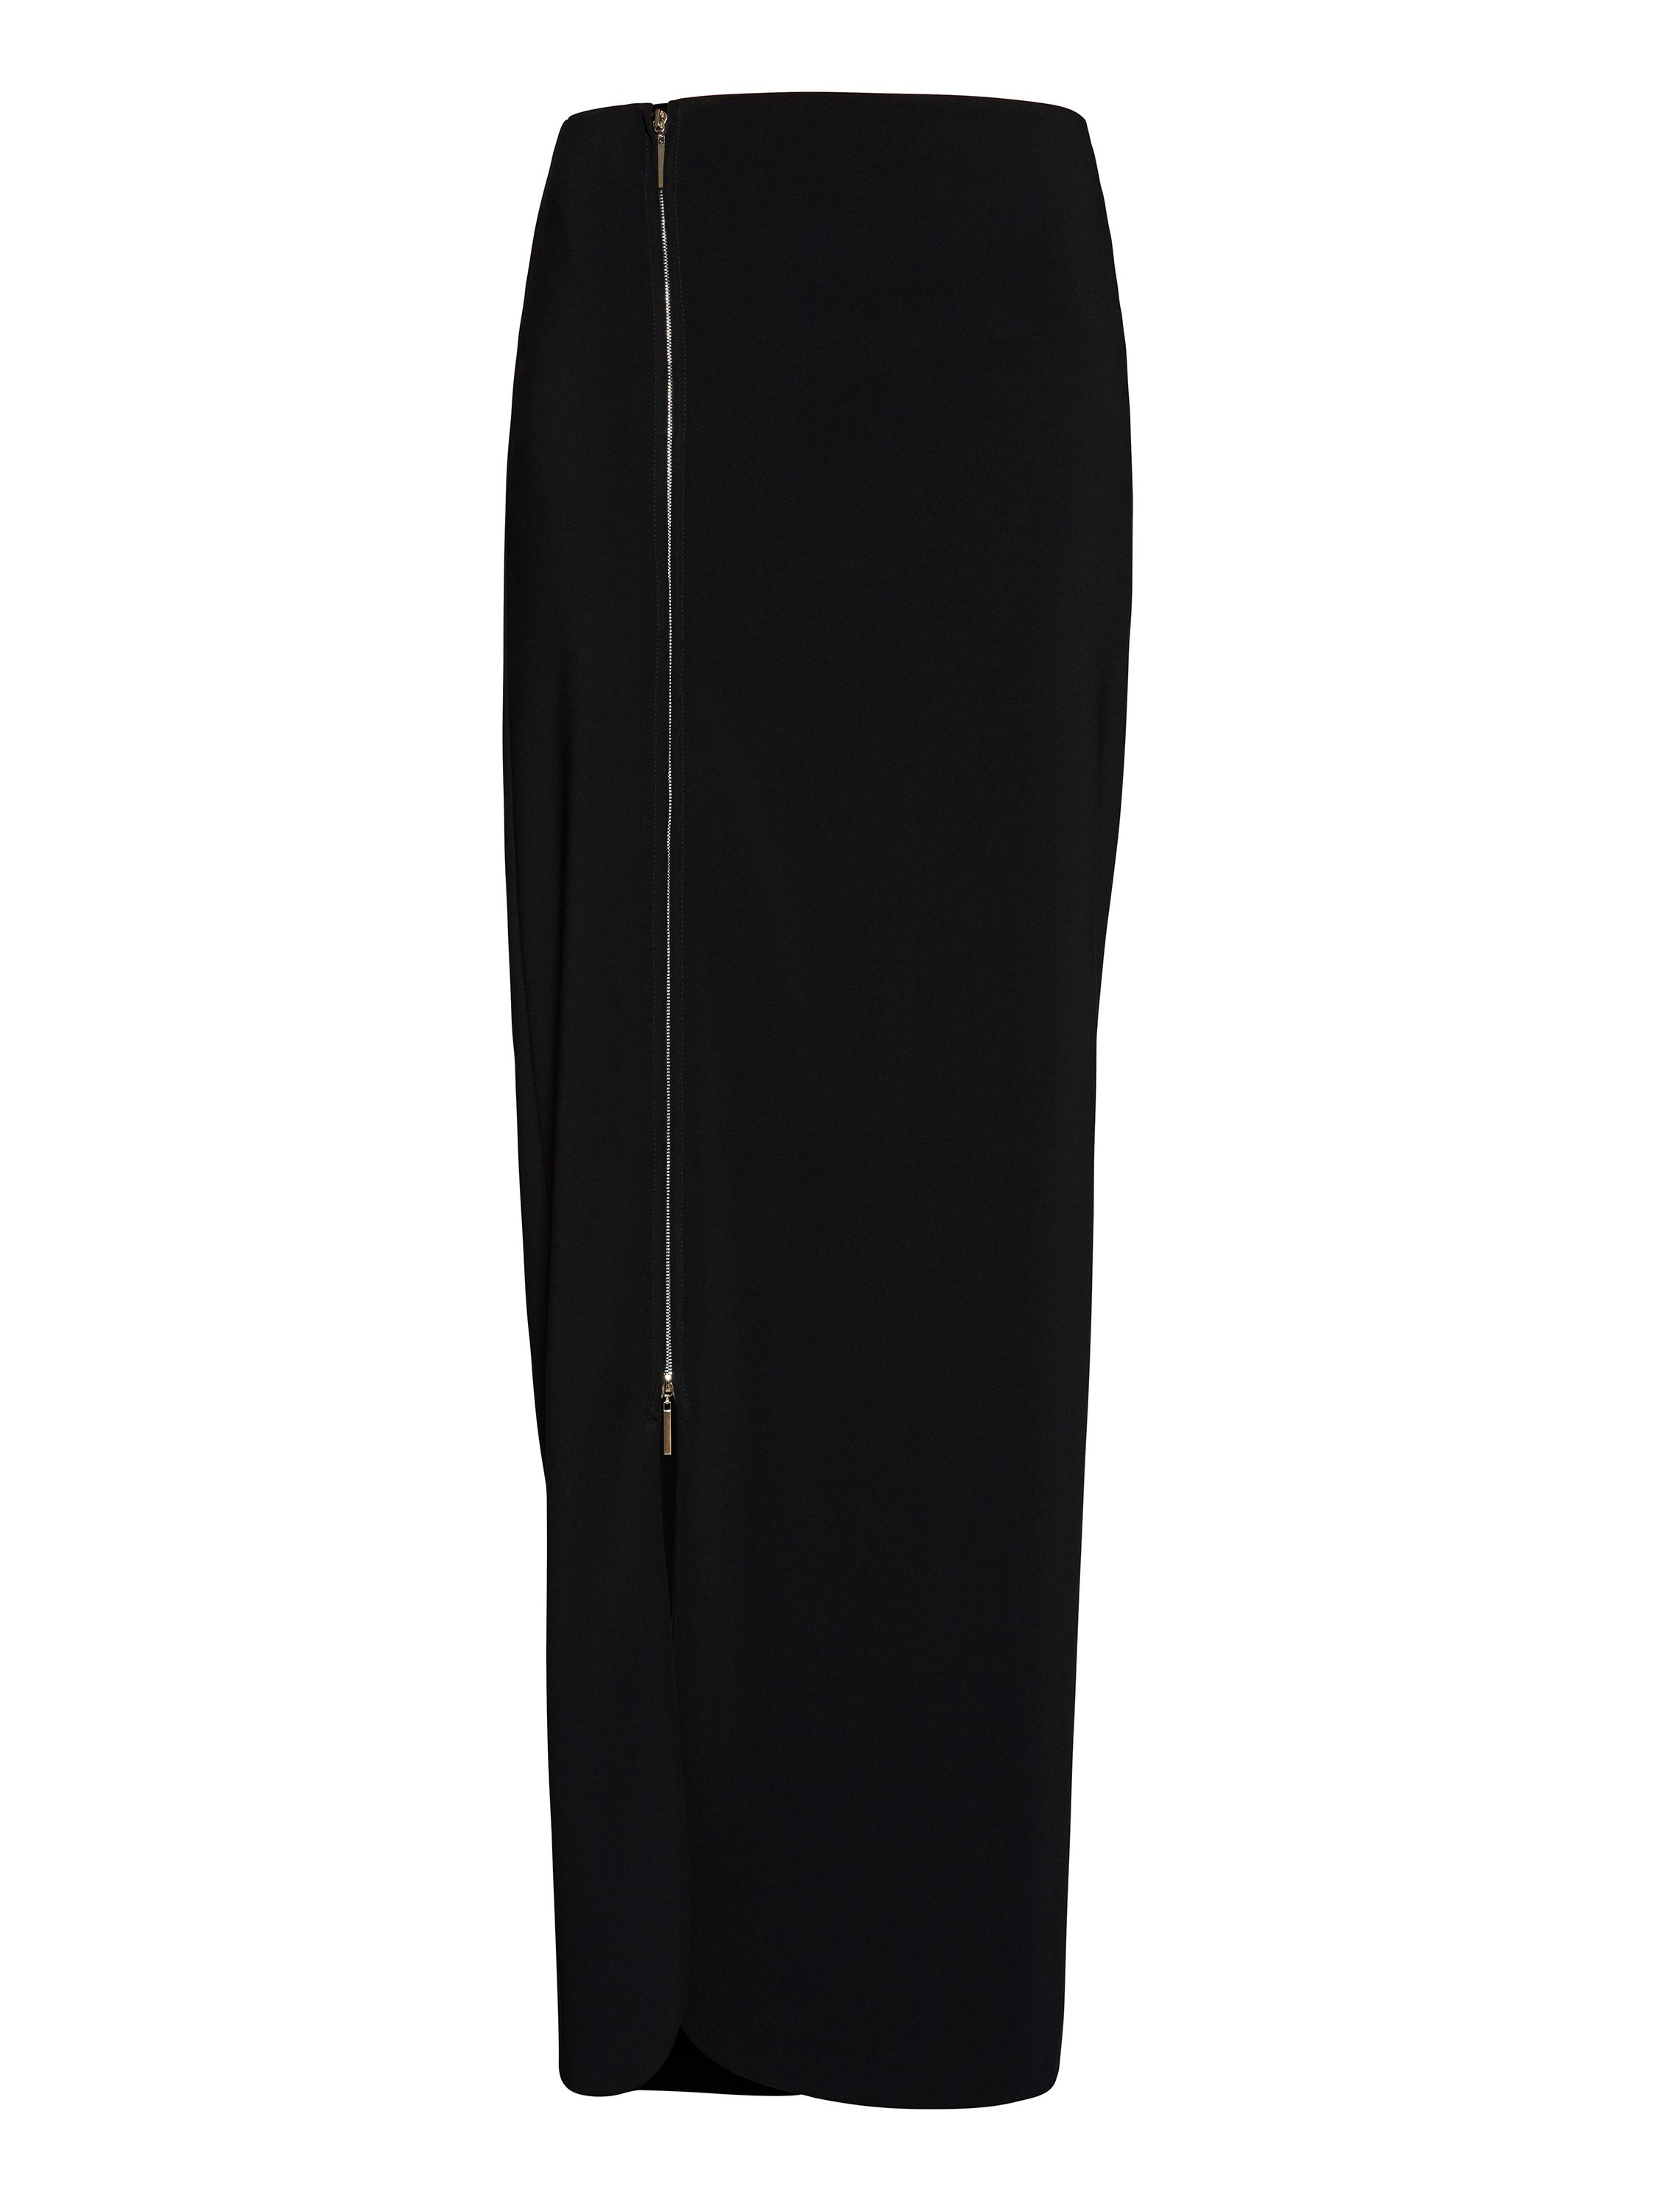 Gina Bacconi Statement zip maxi skirt, Black